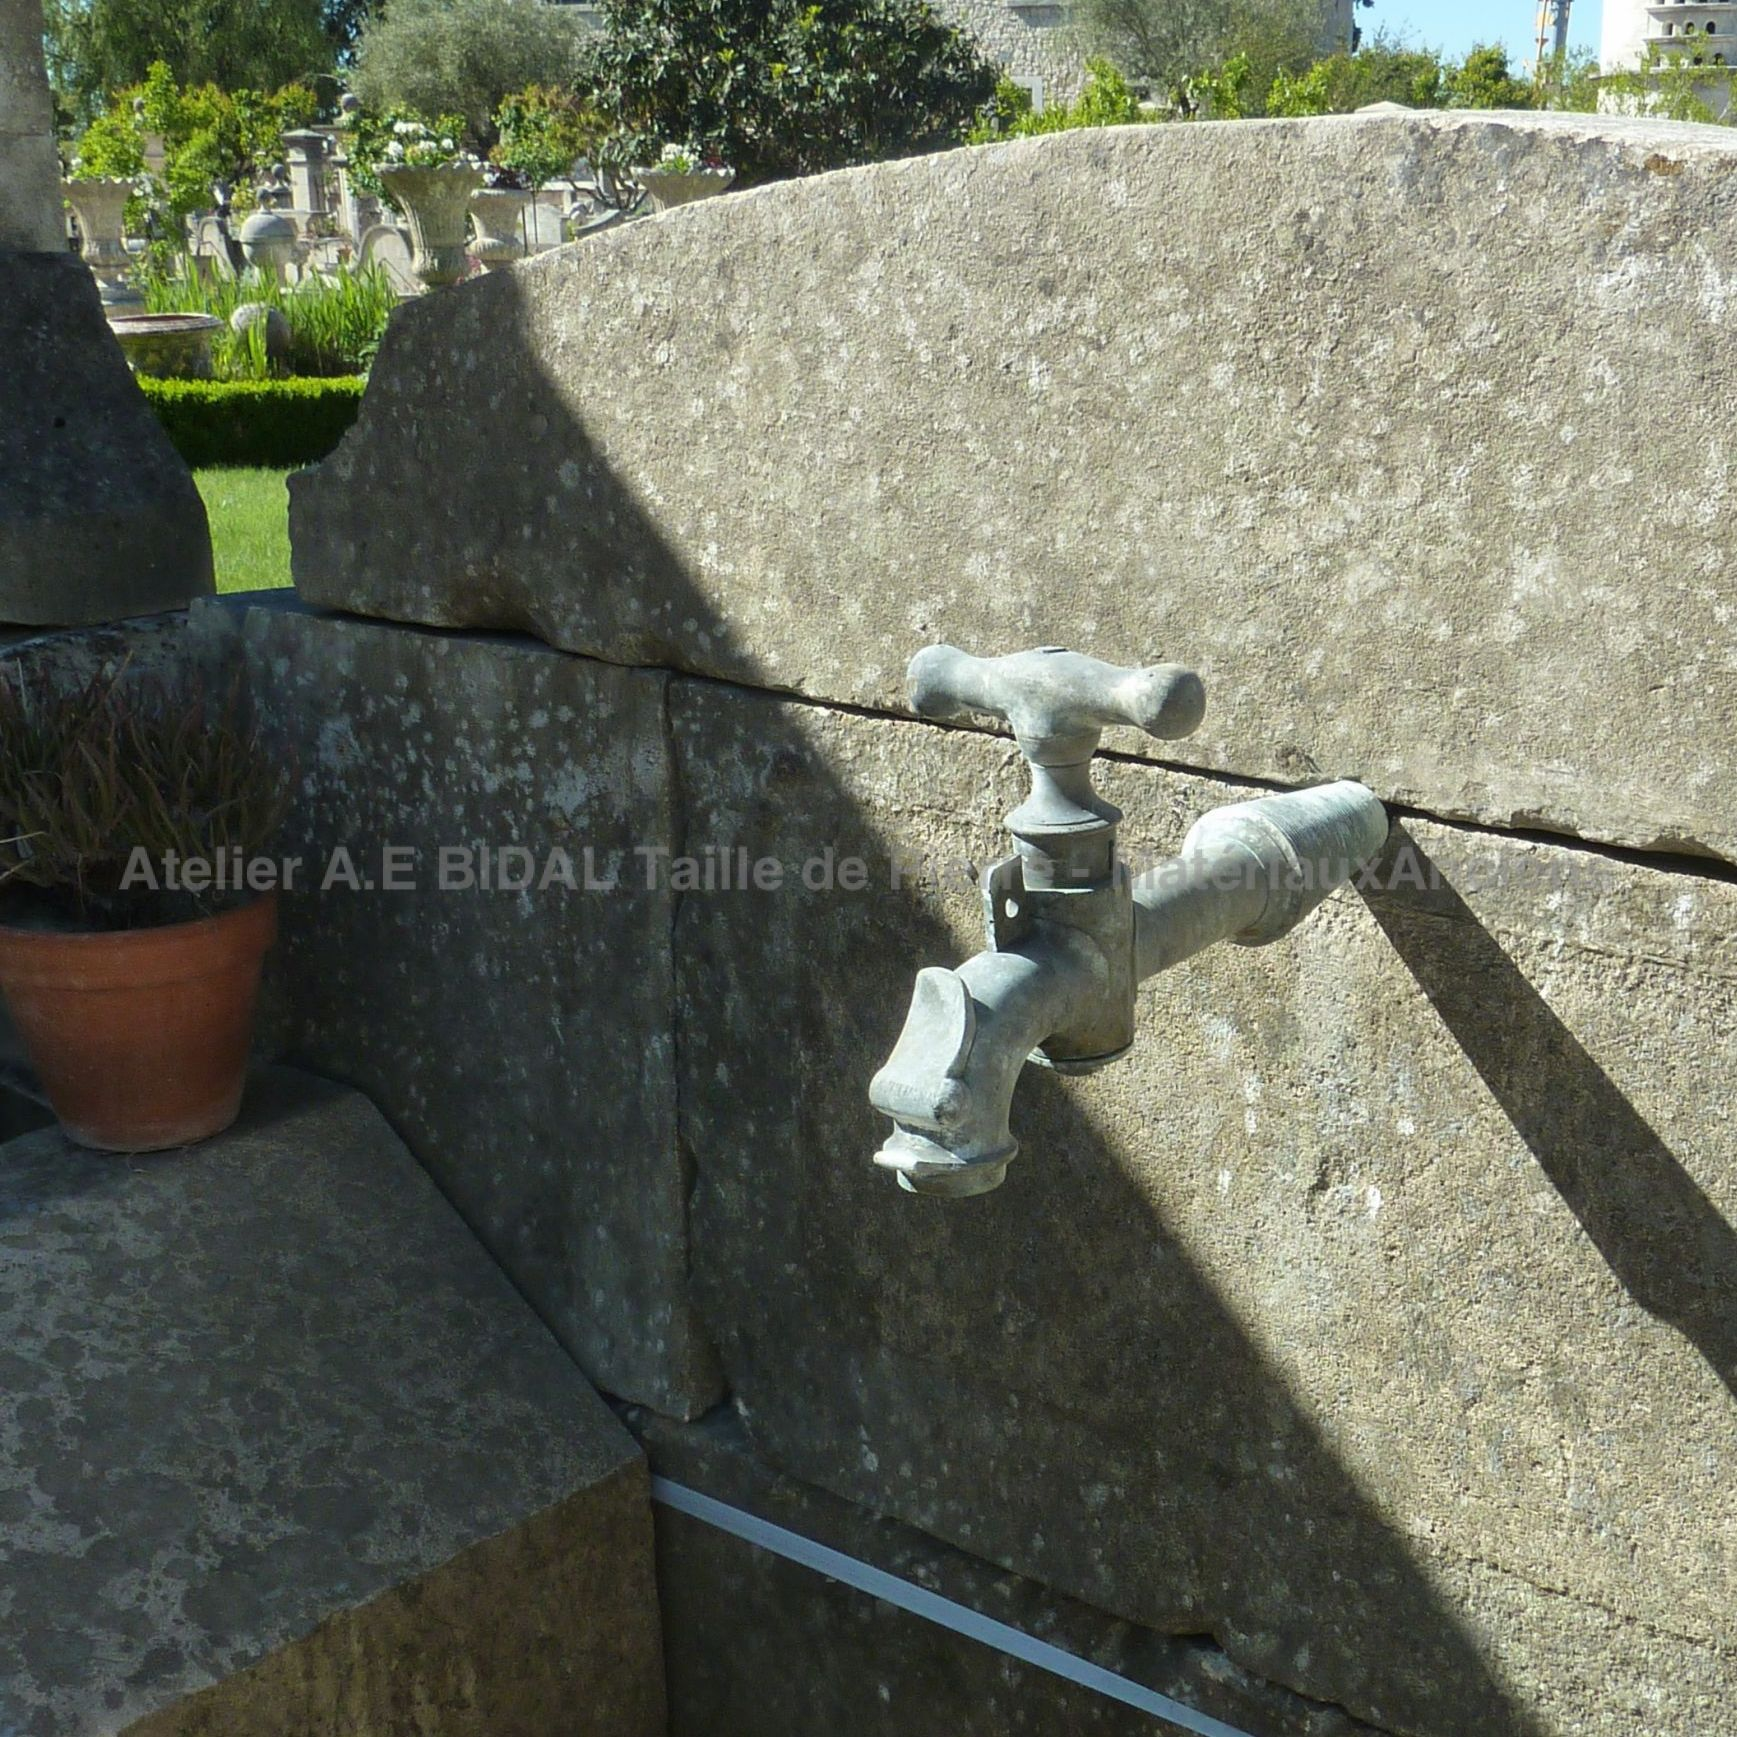 Antique metallic water tap on an outdoor fountain with wash house style basin.